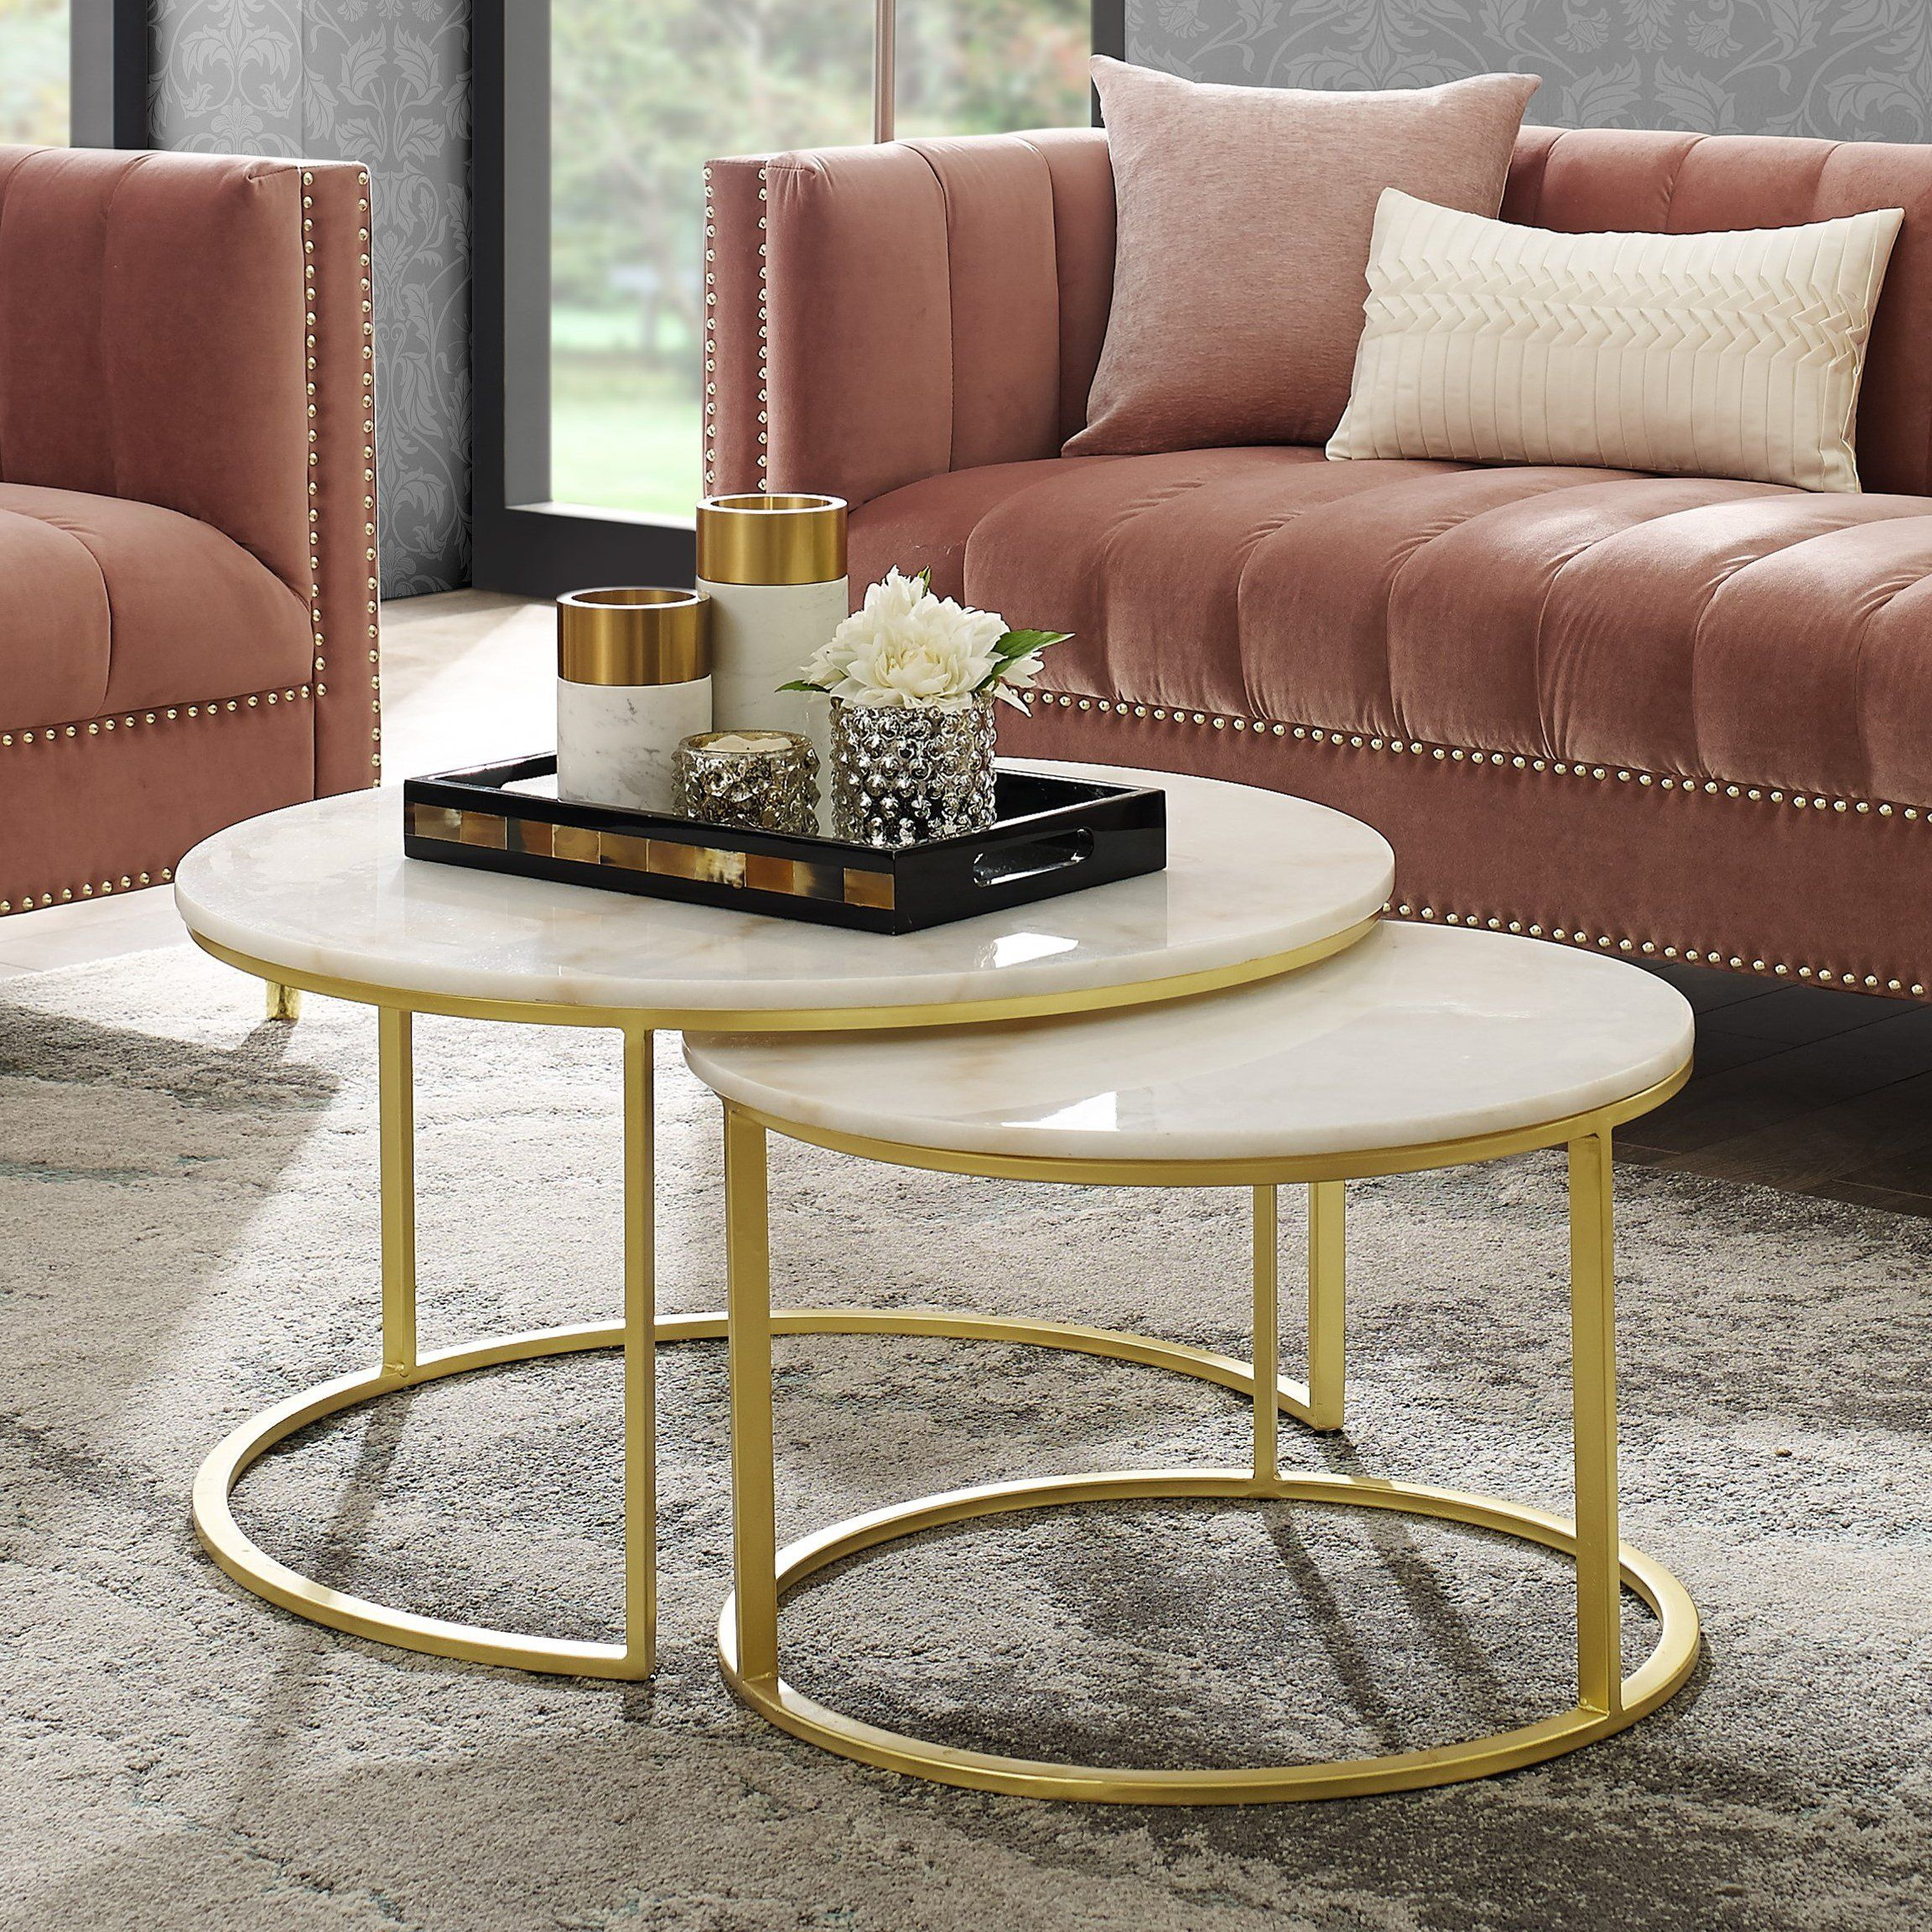 Irene Round Top Nesting Coffee Table In 2020 Coffee Table Nesting Coffee Tables Gold Coffee Table [ 2304 x 2304 Pixel ]